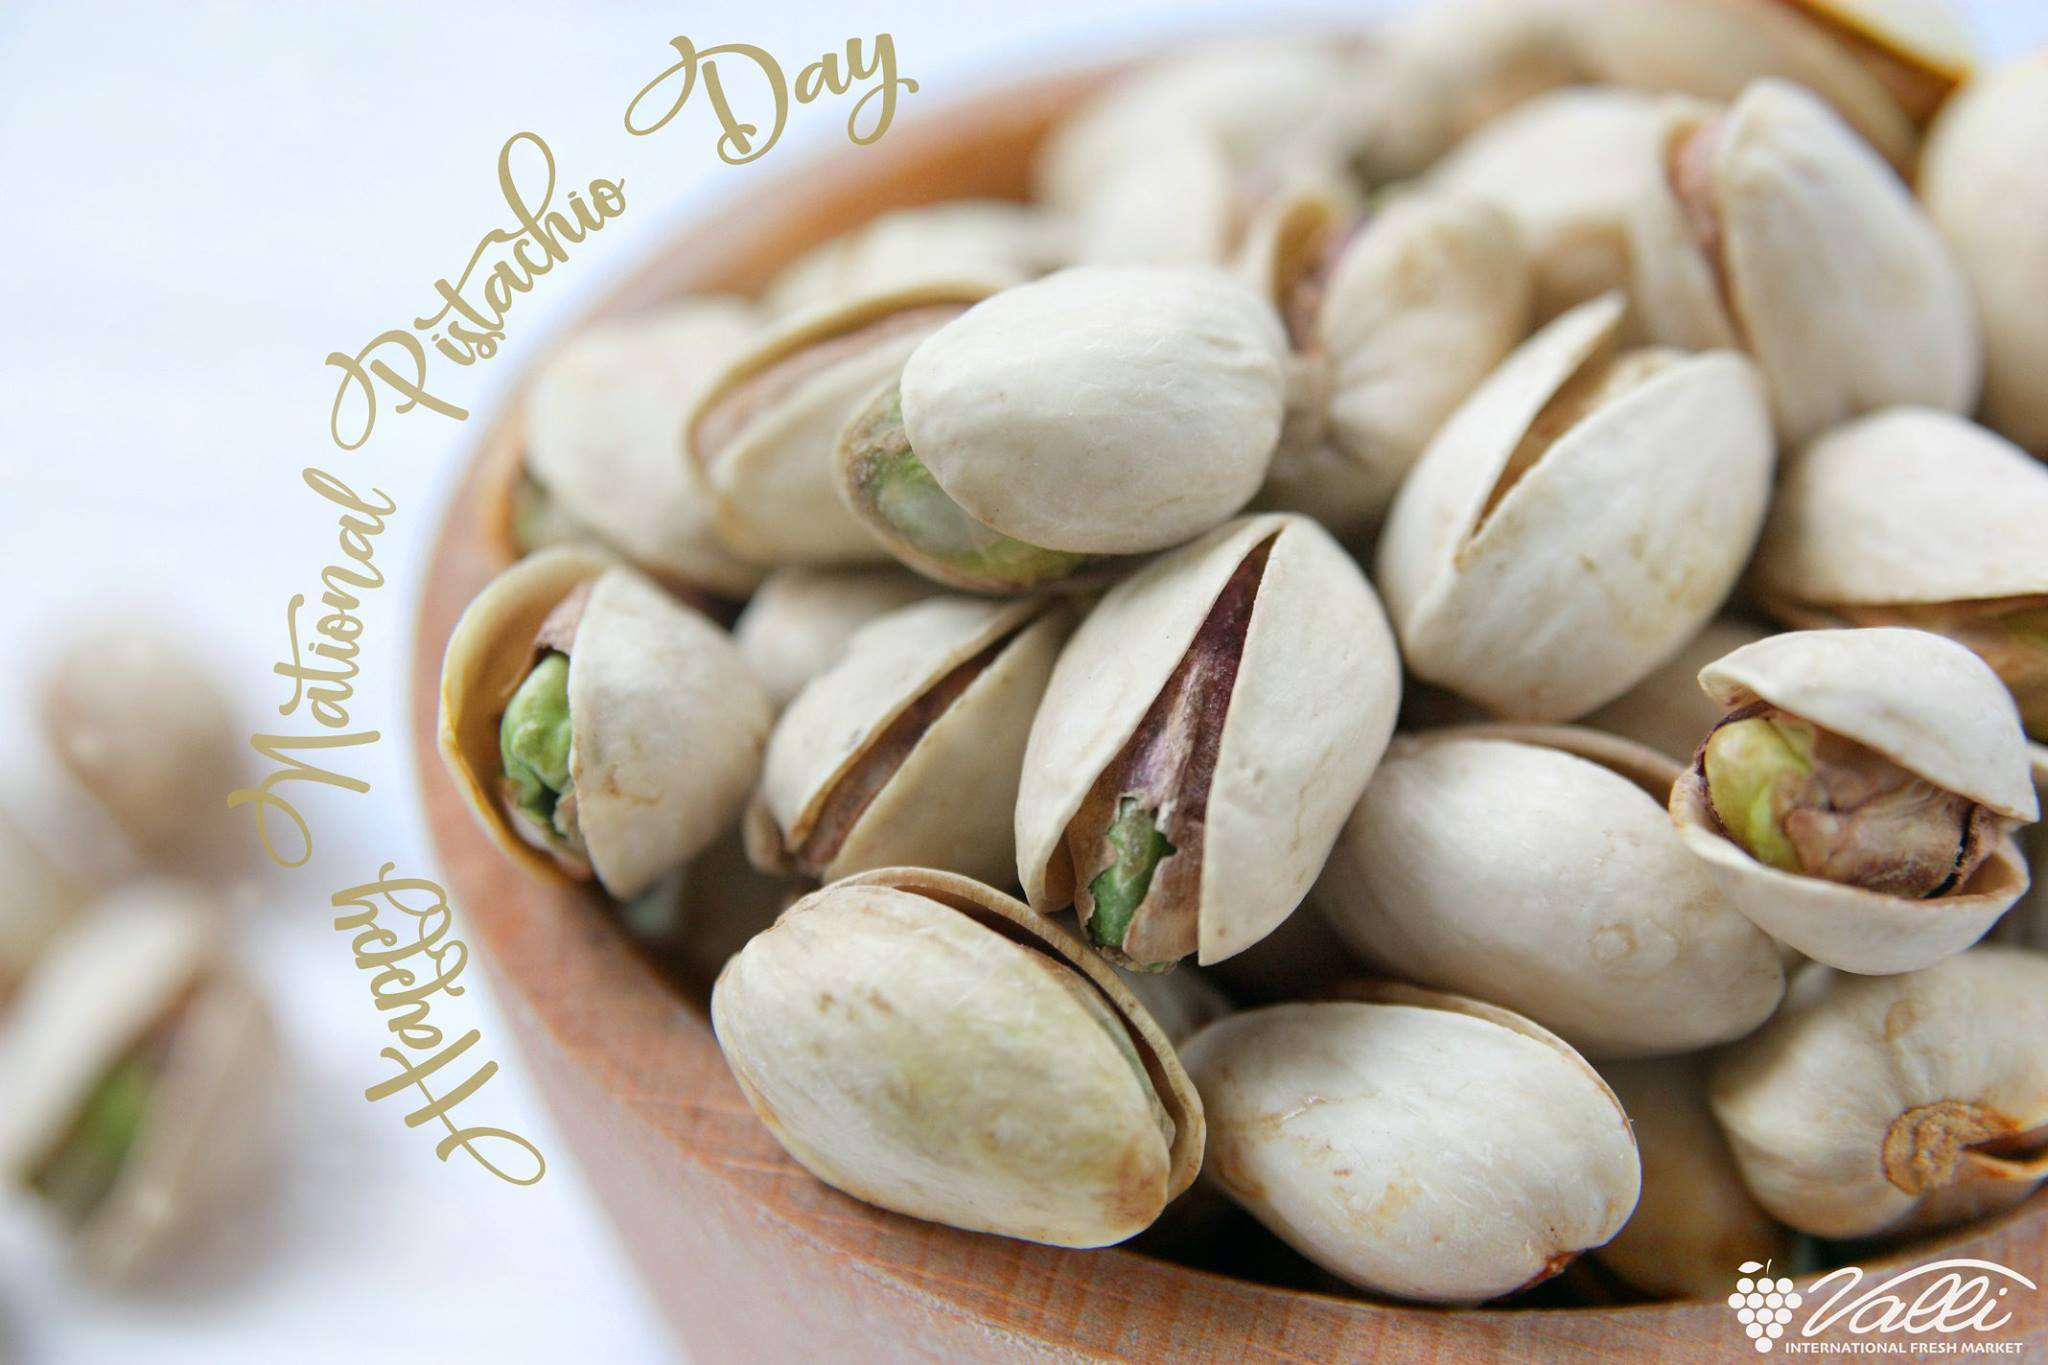 National Pistachio Day Wishes Unique Image